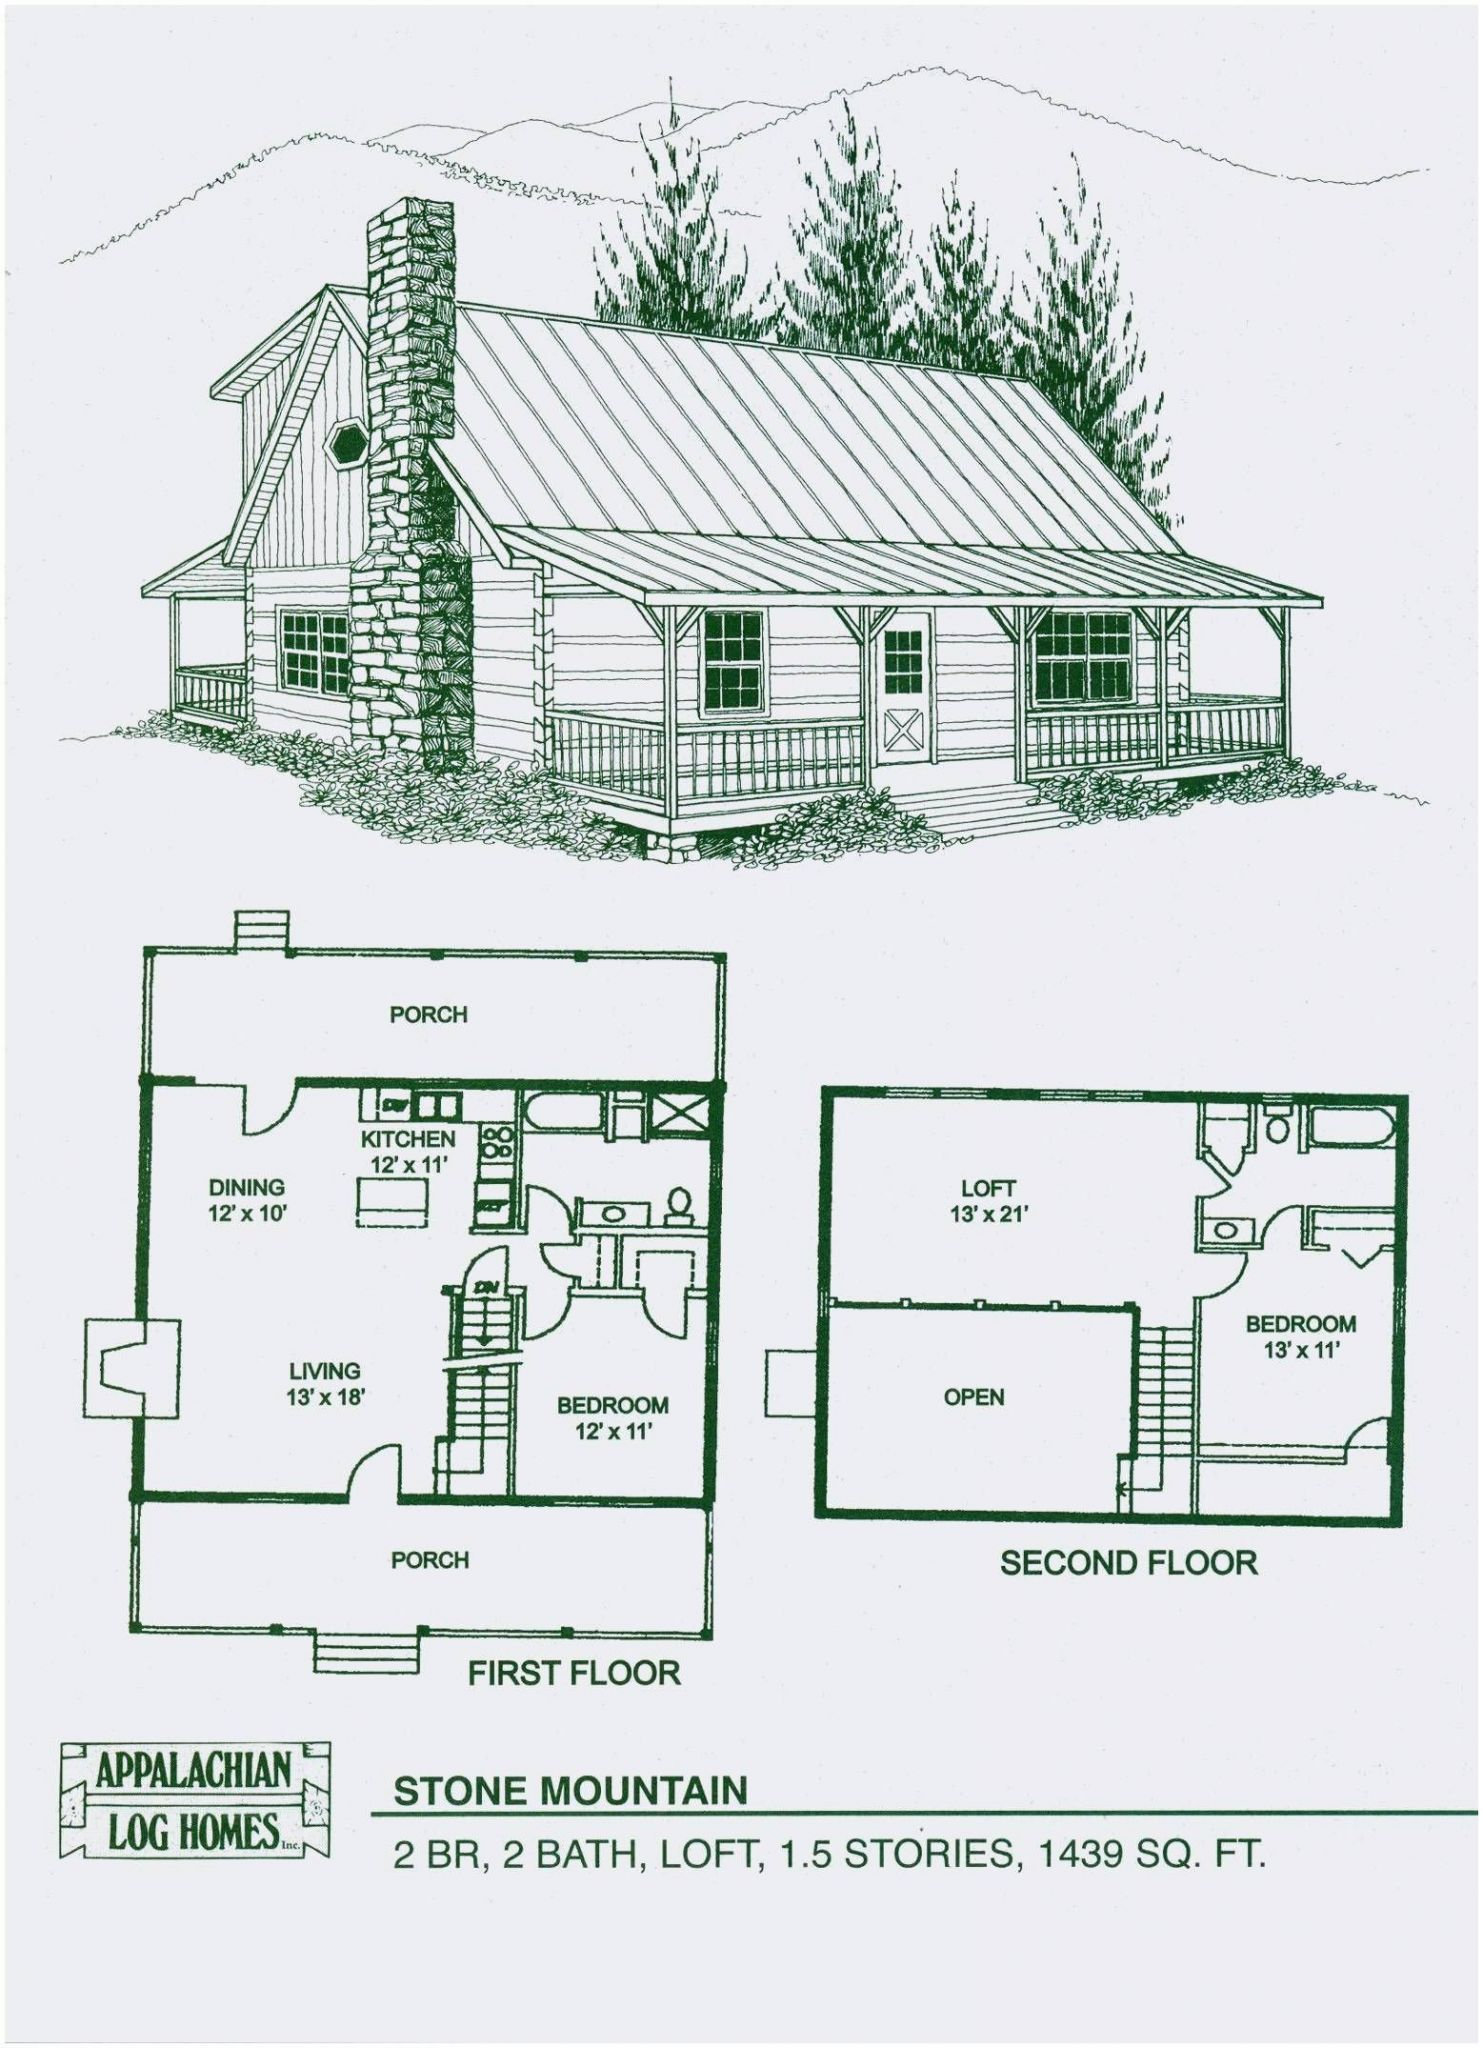 Shop With Living Quarters Floor Plans In 2020 Cabin House Plans Log Cabin Floor Plans Log Home Floor Plans